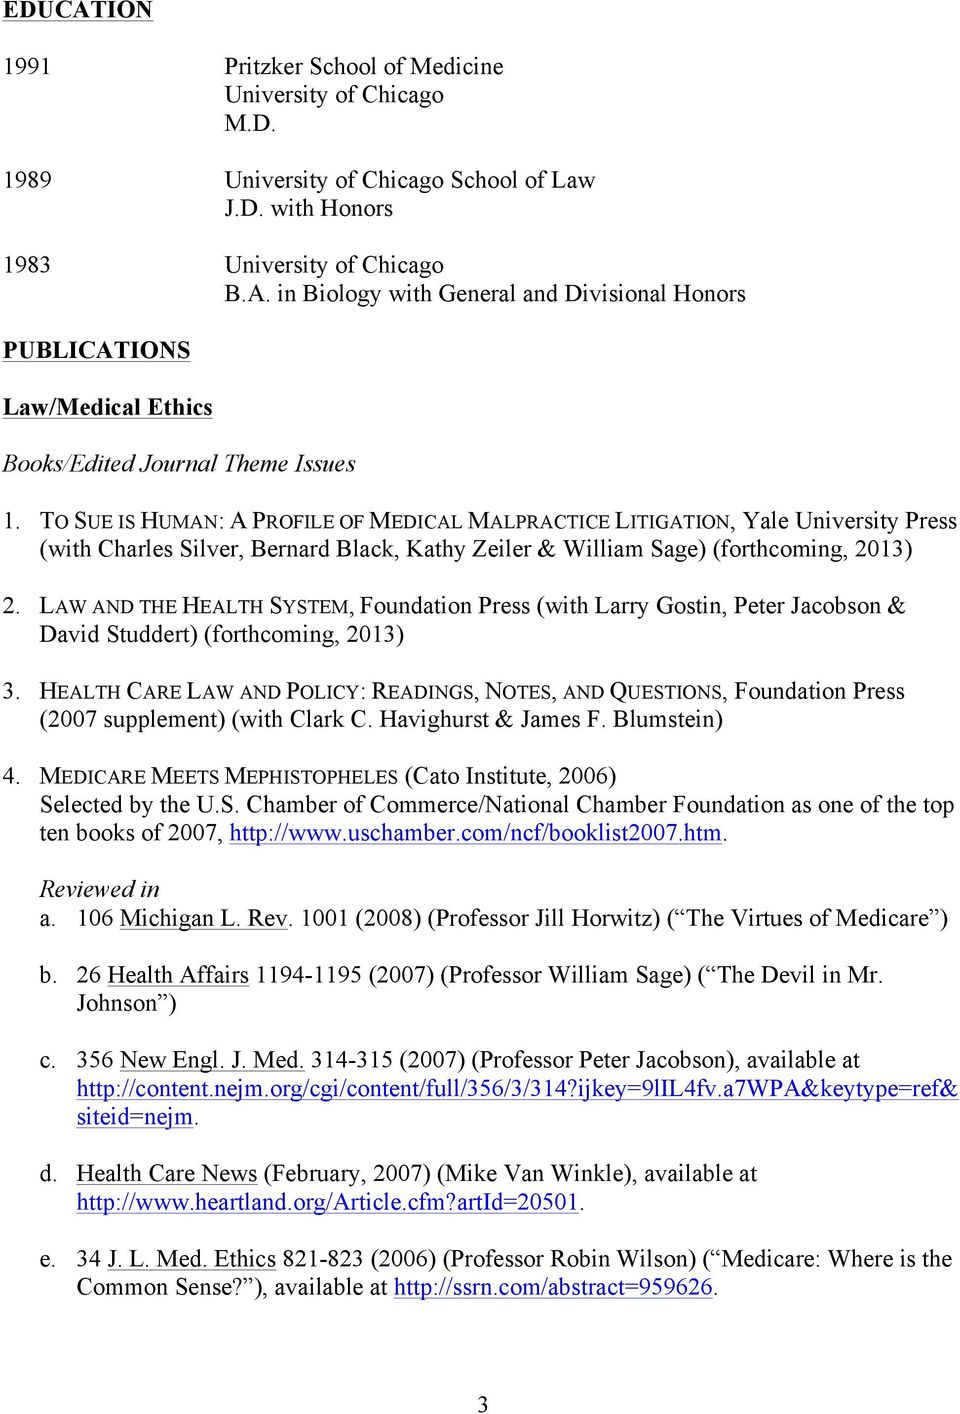 LAW AND THE HEALTH SYSTEM, Foundation Press (with Larry Gostin, Peter Jacobson & David Studdert) (forthcoming, 2013) 3.